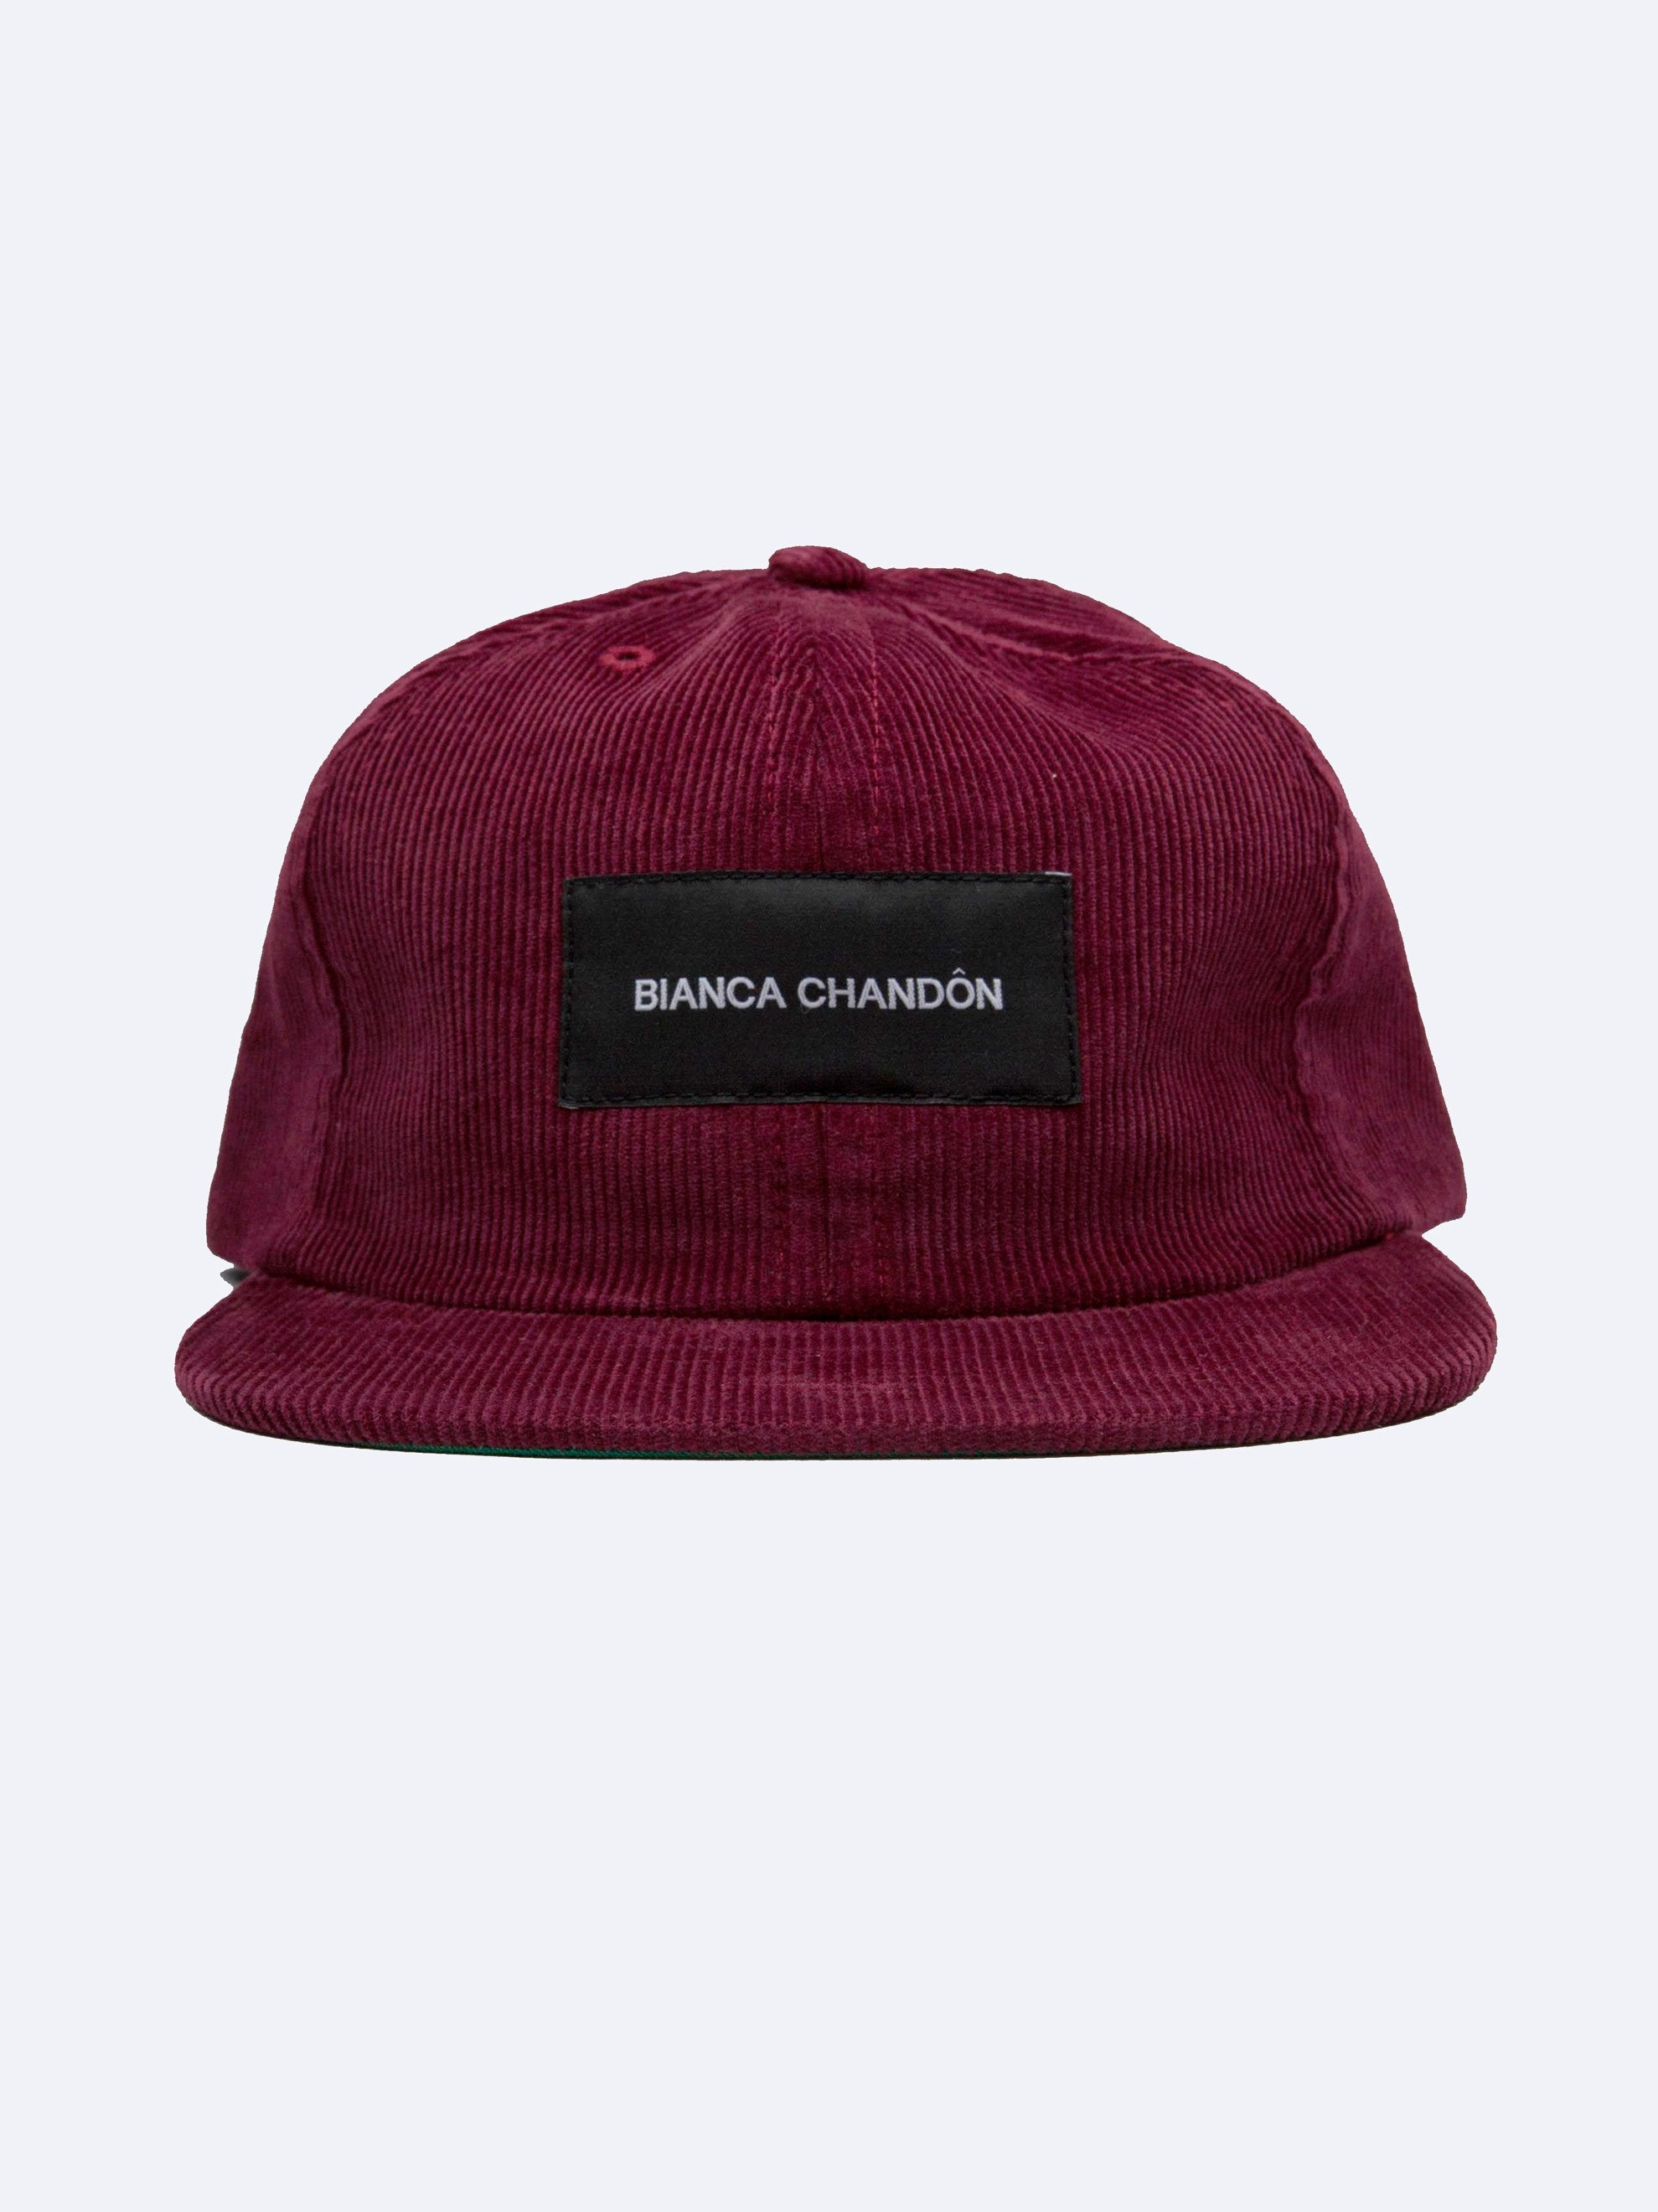 806f524ce09c7 Buy Bianca Chandon Logotype Label Polo Cap Online at UNION LOS ANGELES